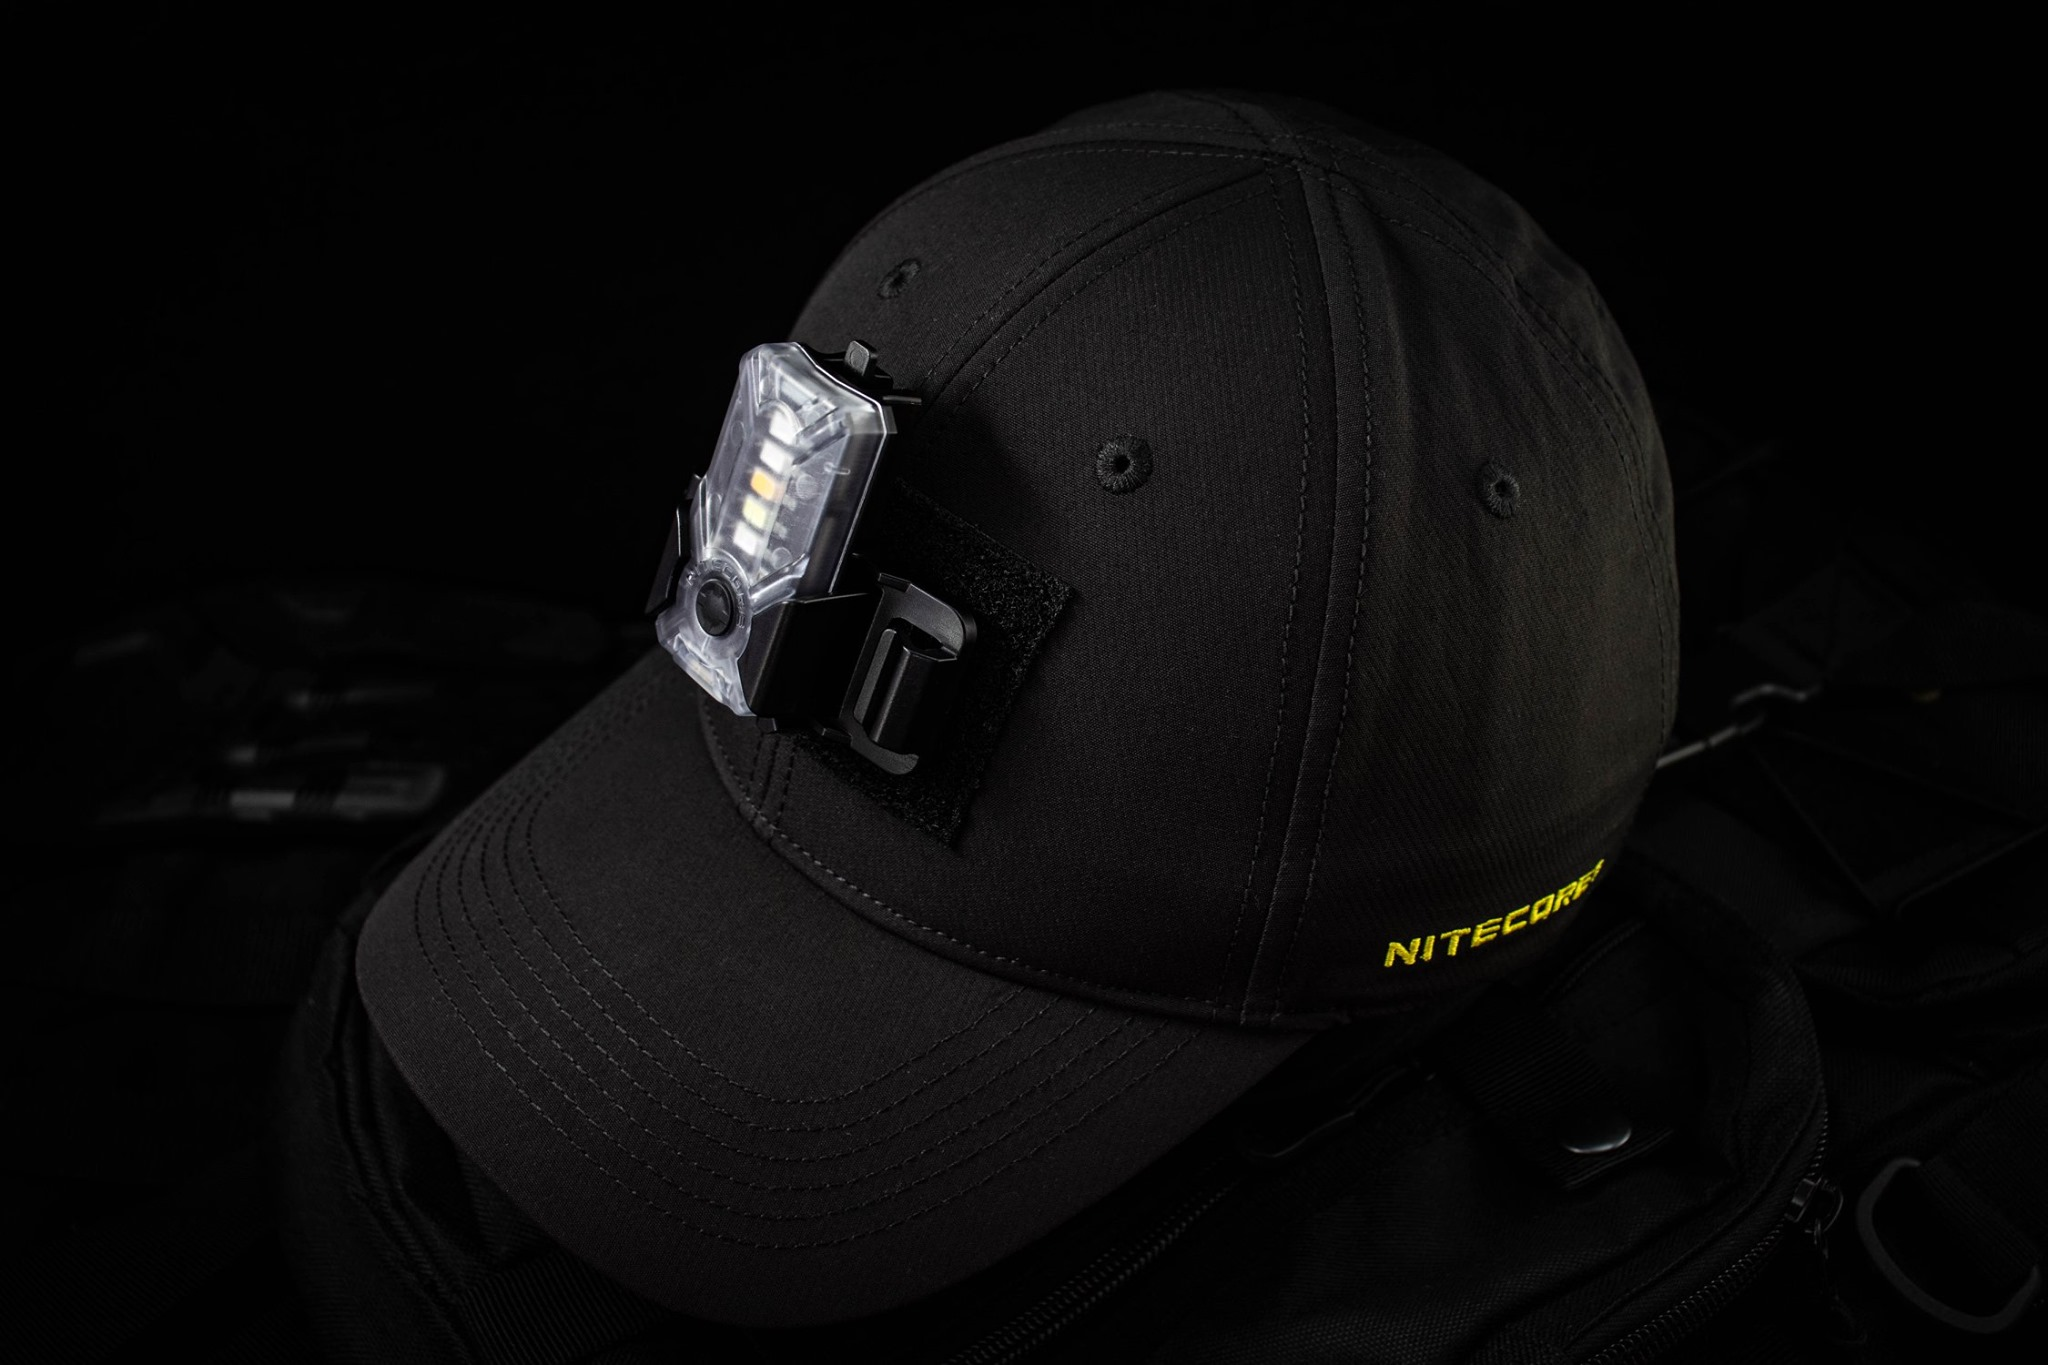 When wearing NITECORE Combat Hat #NDH10,you can put the patch or light as #NU07LE on the front or rear big velcro area for signal or illumination.